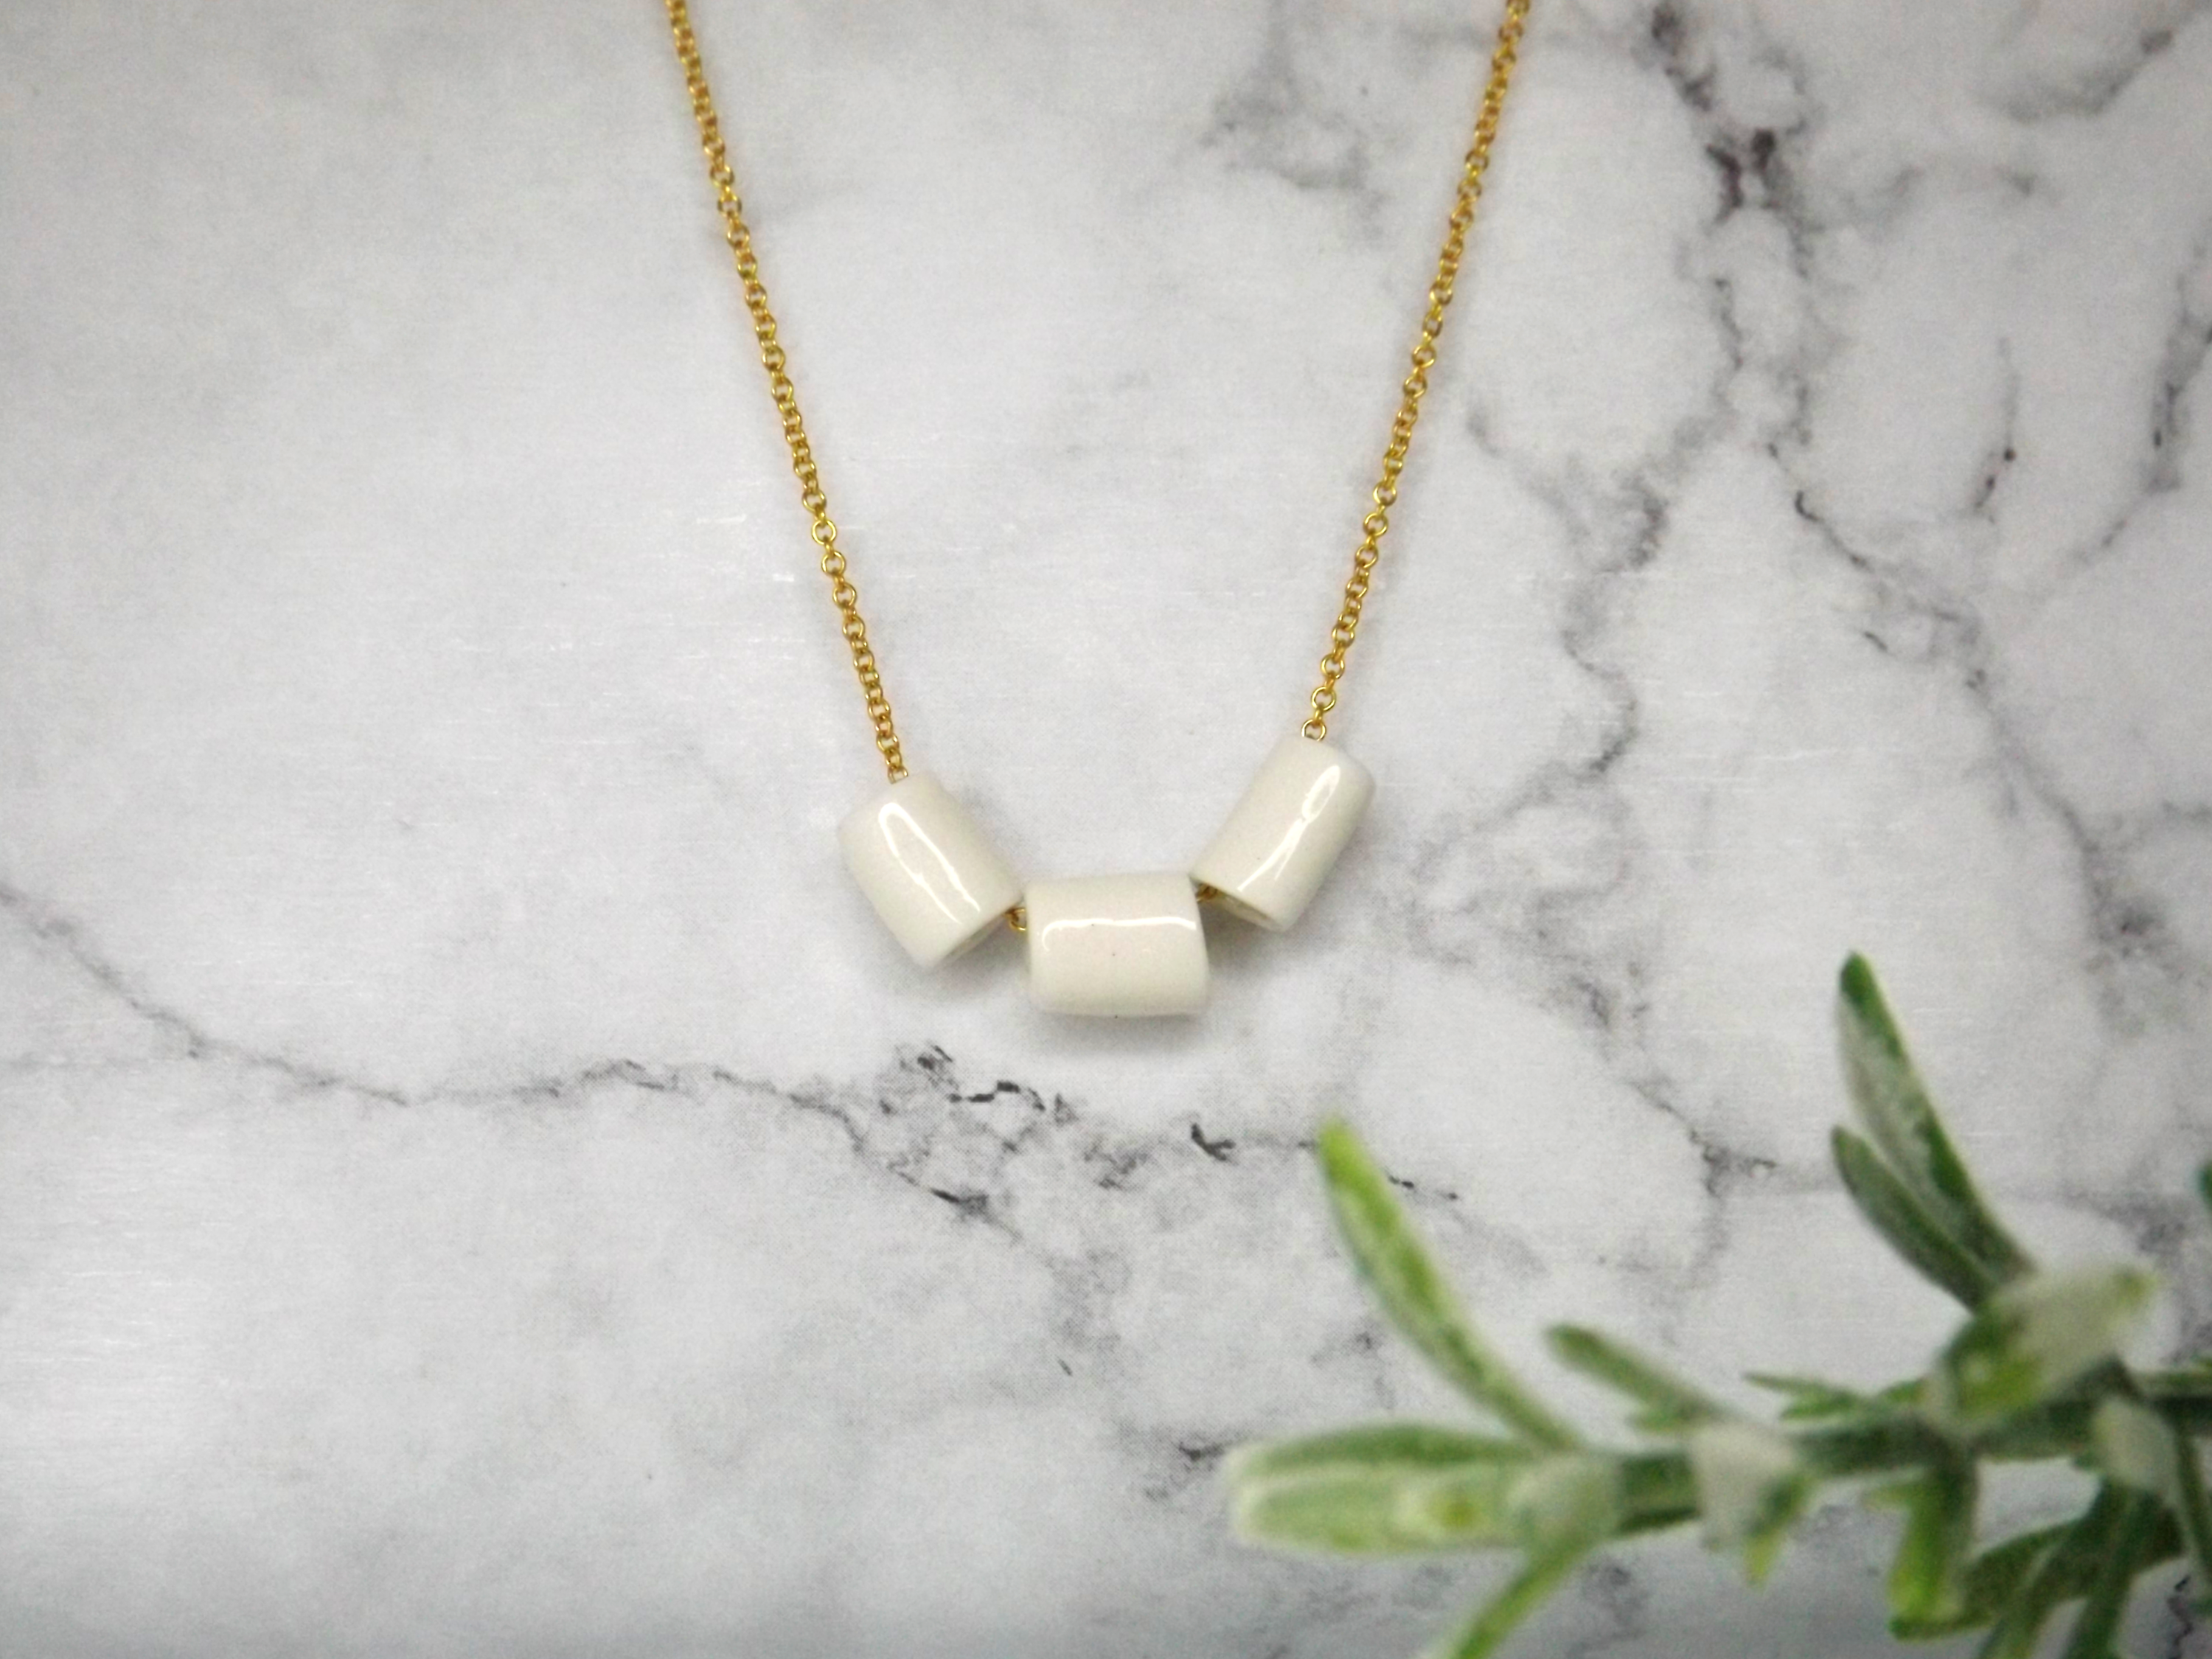 Porcelain and gold mini tubes necklace.